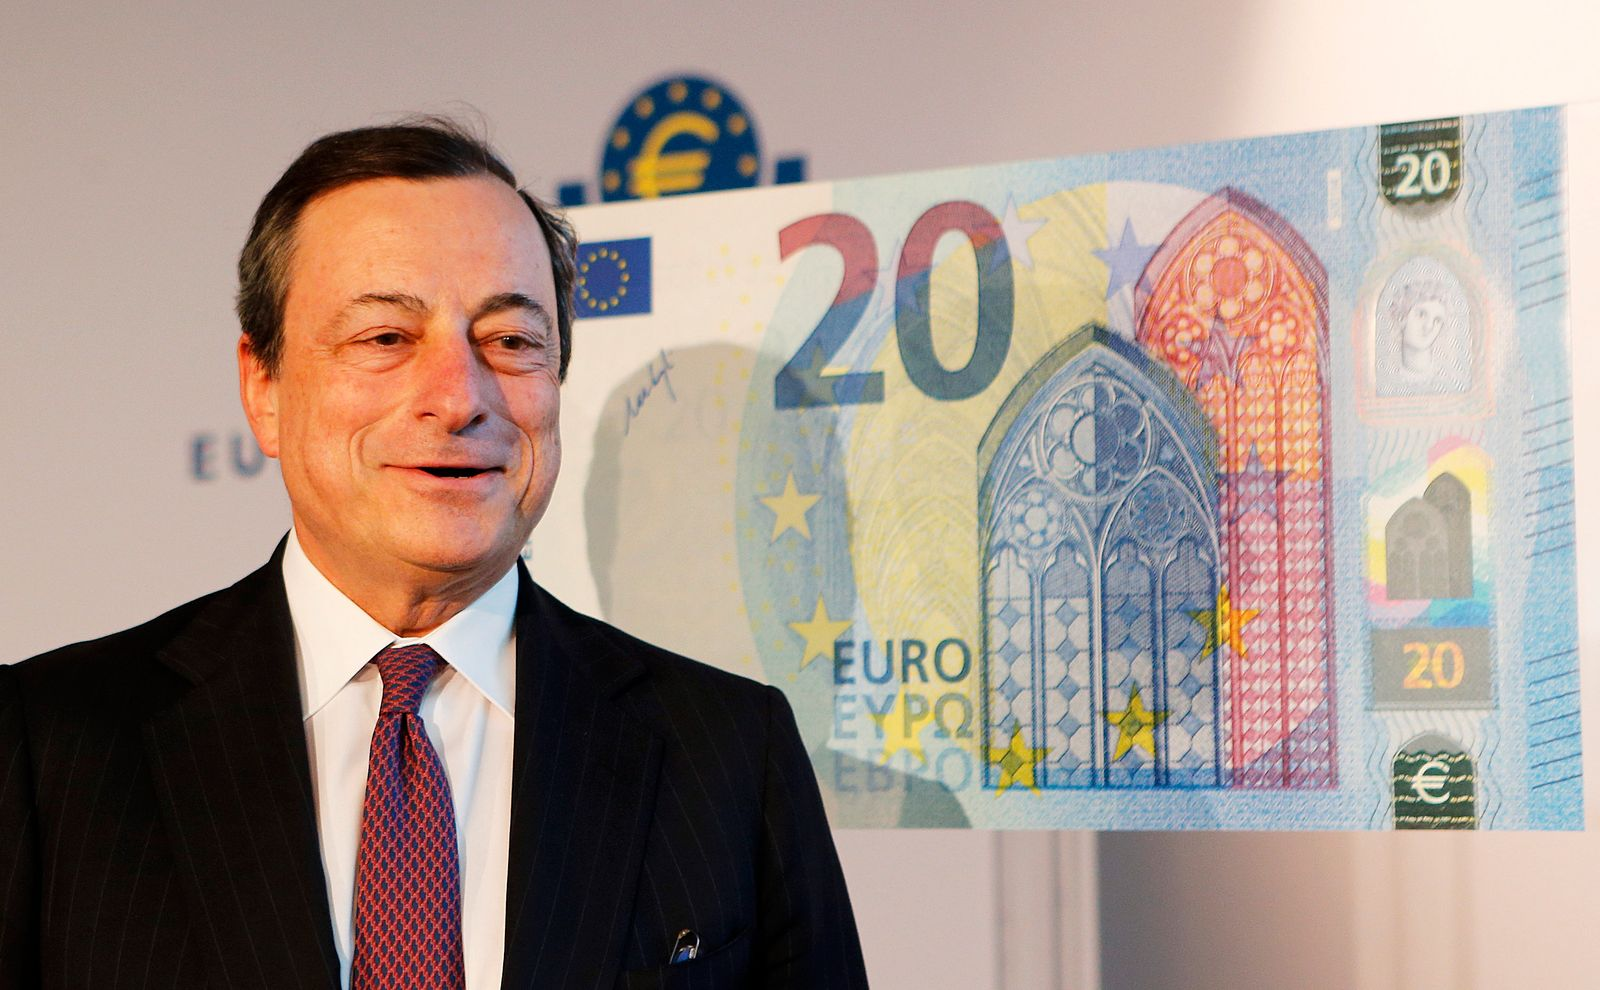 Germany Euro Draghi